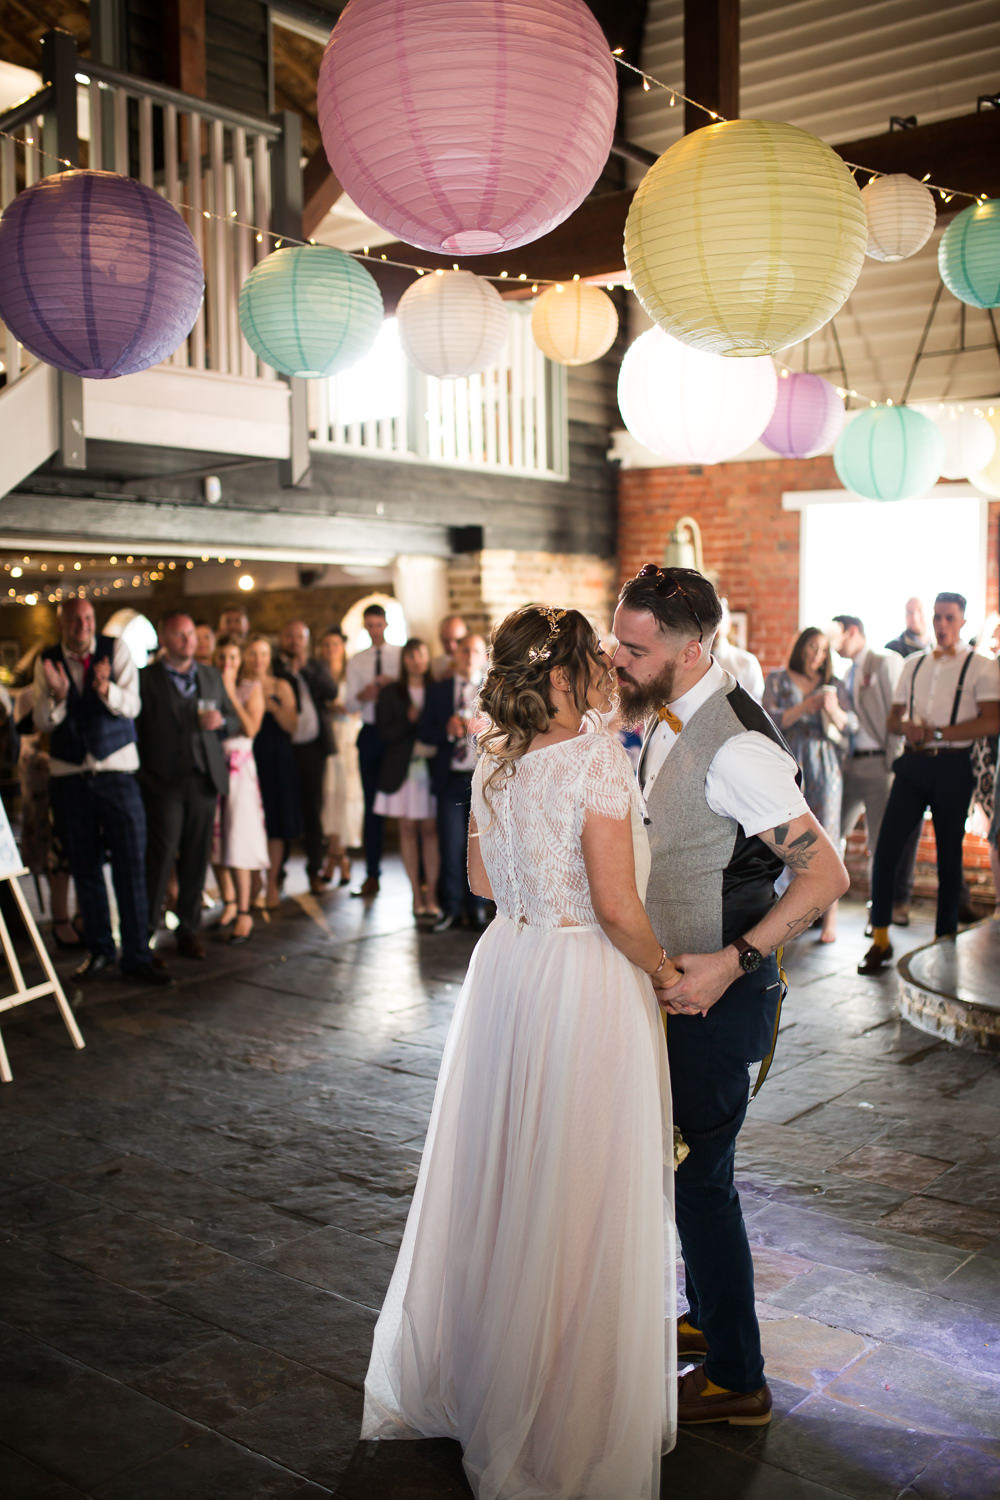 Bride Bridal Lace Cap Sleeve Separates Top Skirt Bow Tie Braces Groom Waistcoat Pastel Paper Lanterns East Quay Wedding Florence Berry Photography